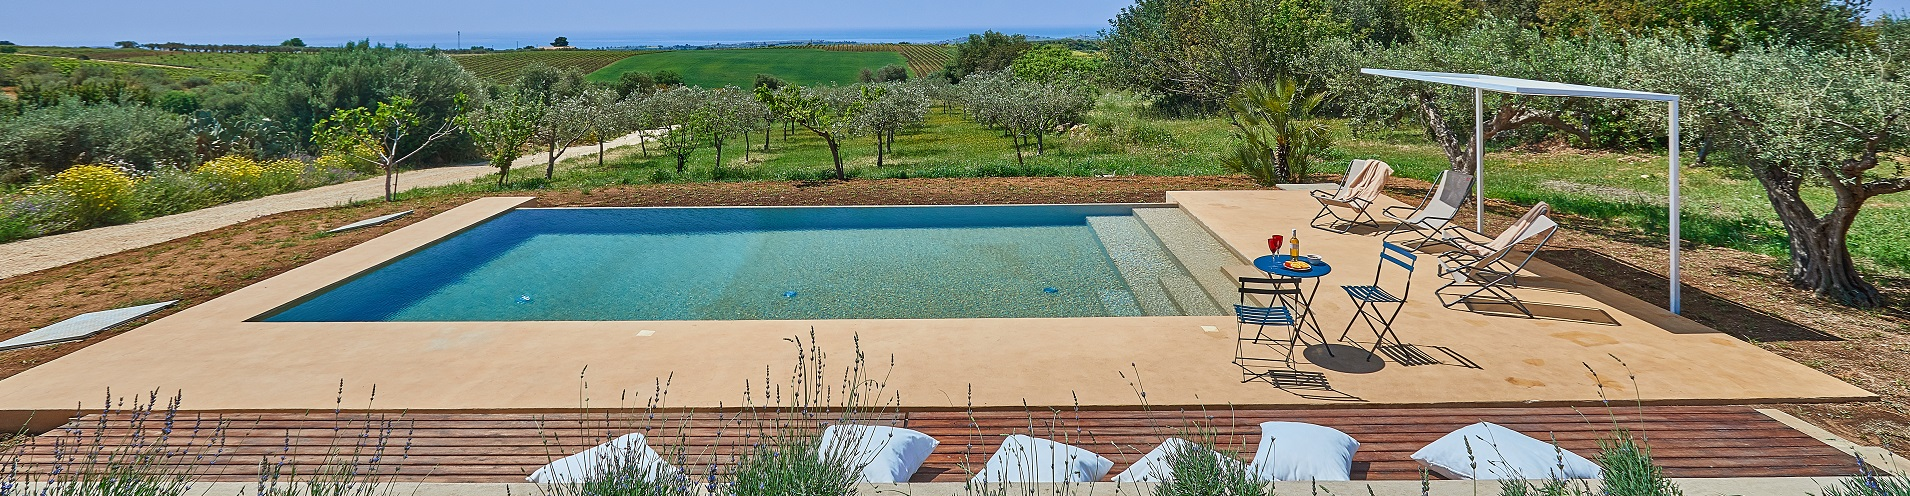 Holidays Villas School Summer Holidays Top Villas In Sicily